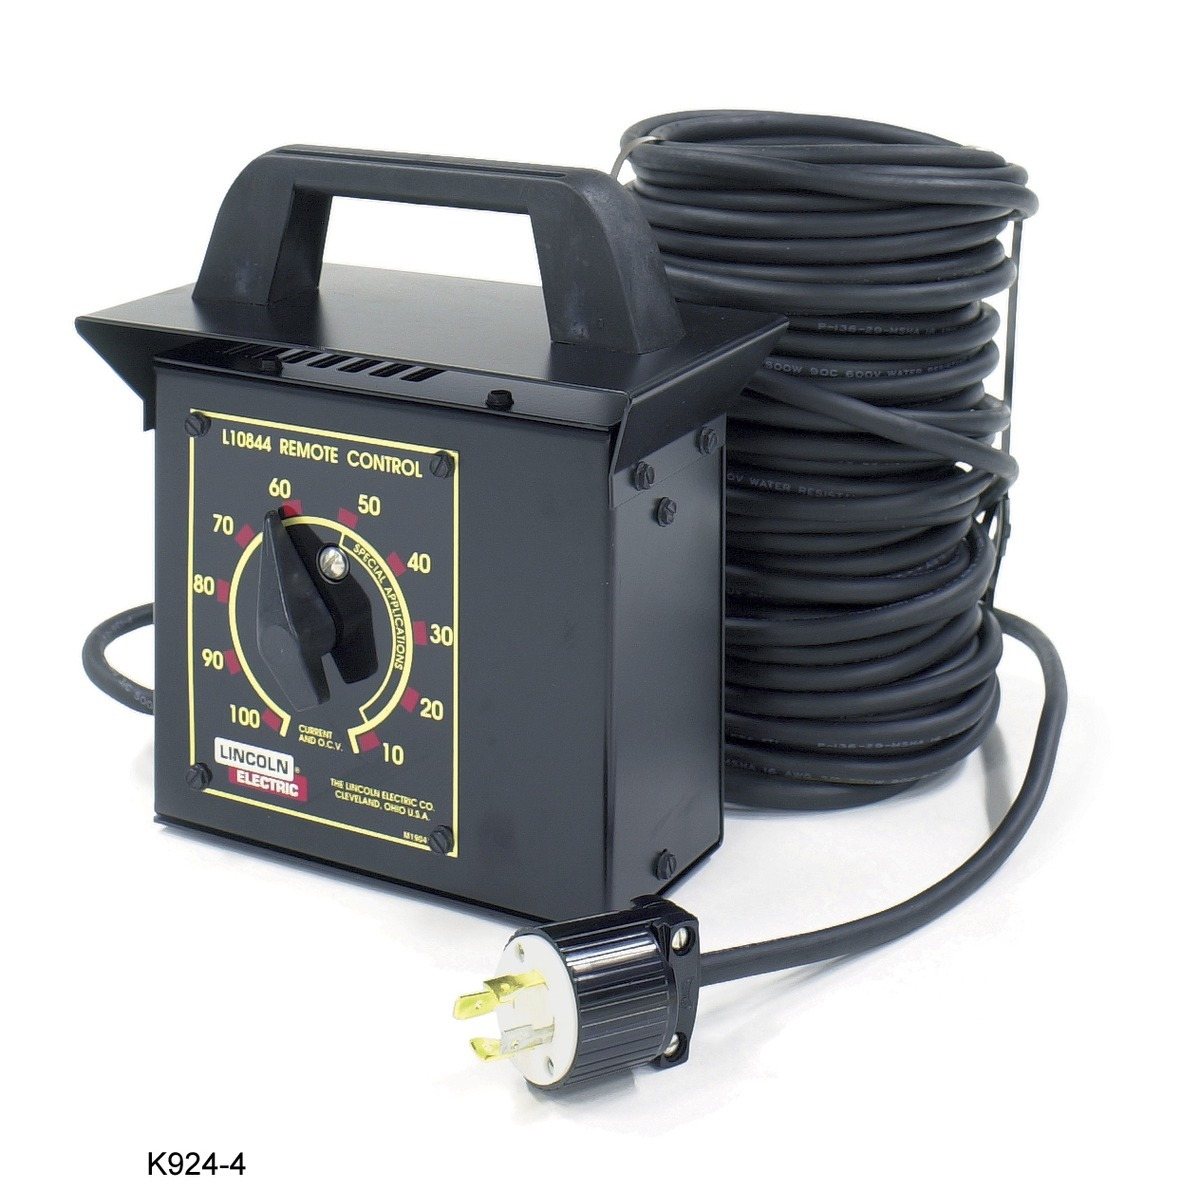 Airgas Wiring A Rheostat Lincoln Electric Remote Control Kit Includes Switch Receptacle And